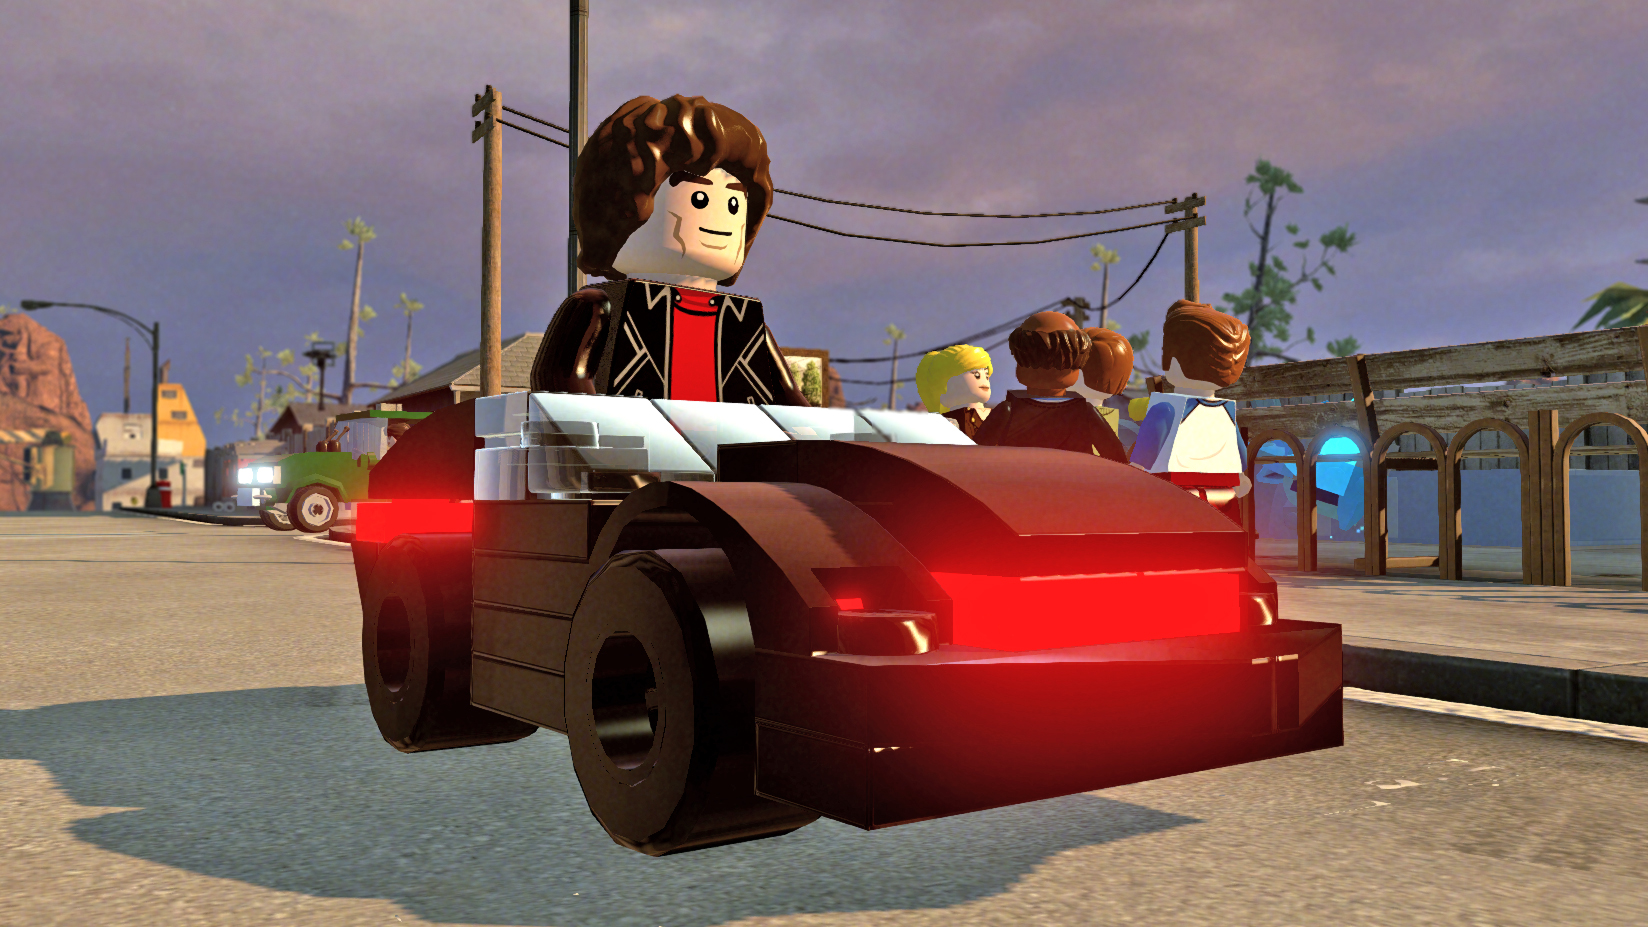 LEGO BATMAN MOVIE, KNIGHT RIDER, EXCALIBUR BATMAN Added to LEGO DIMENSIONS